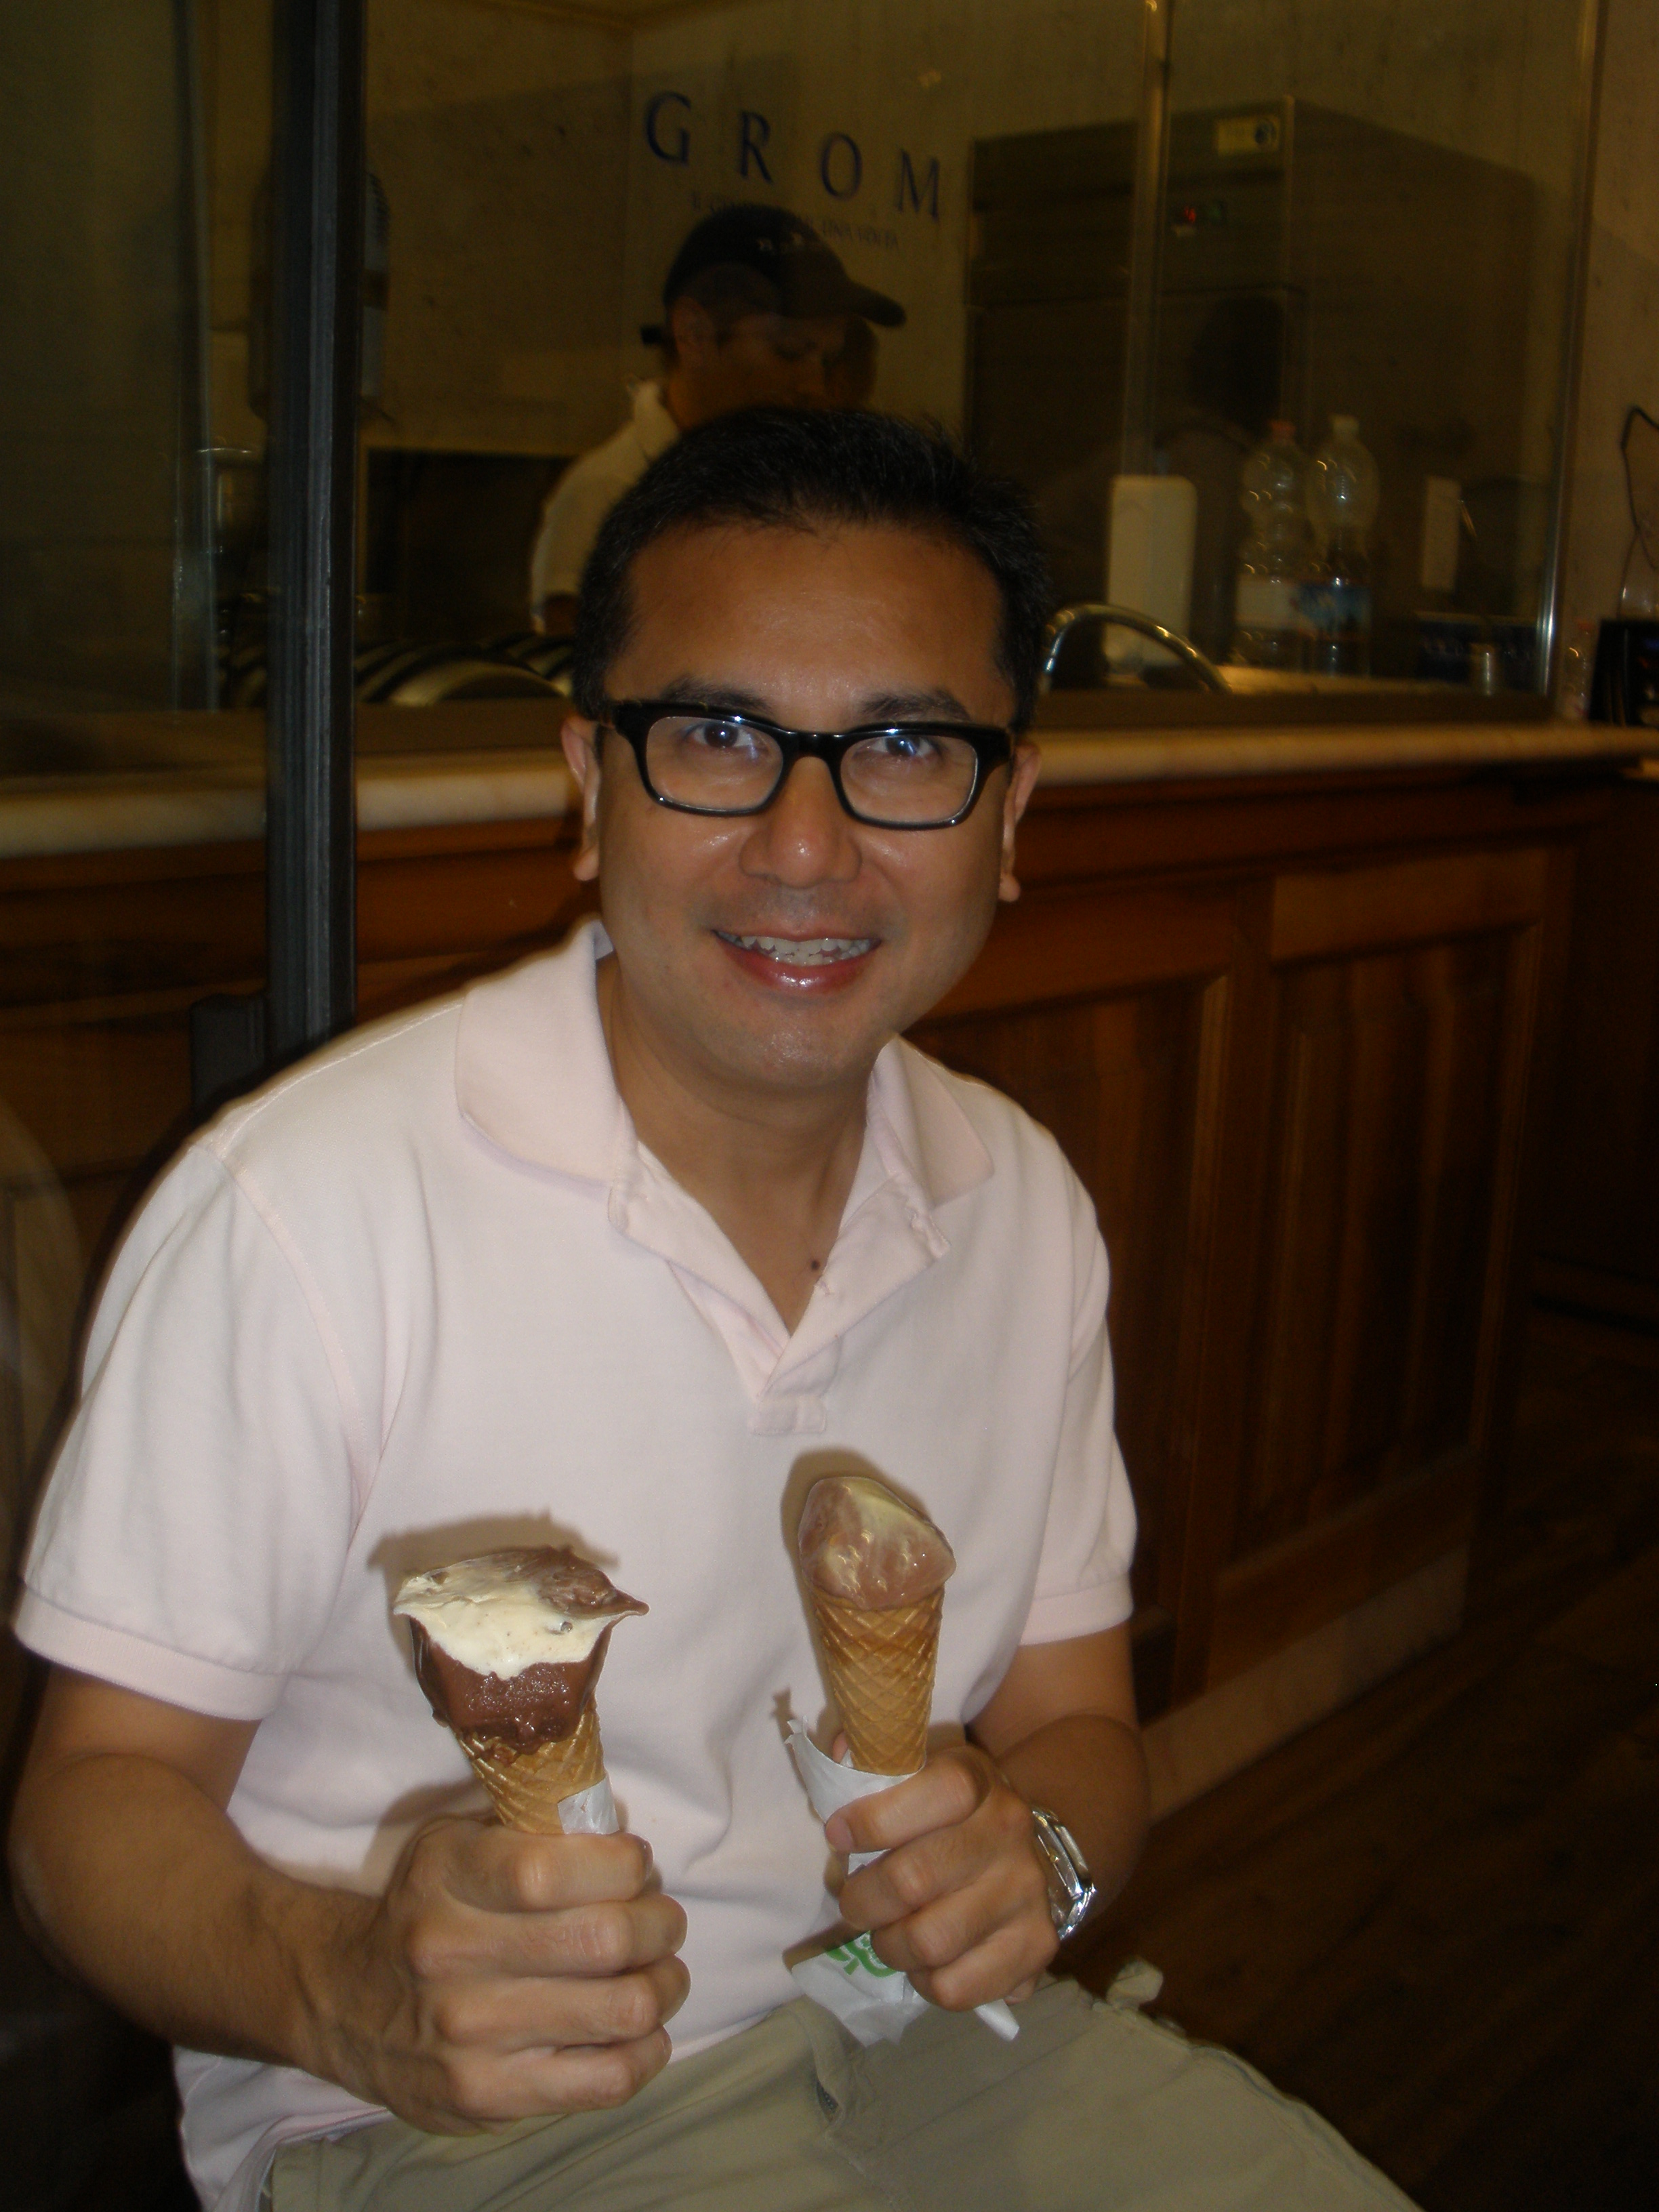 Grom Gelato Florence FromPointATo with his hands full